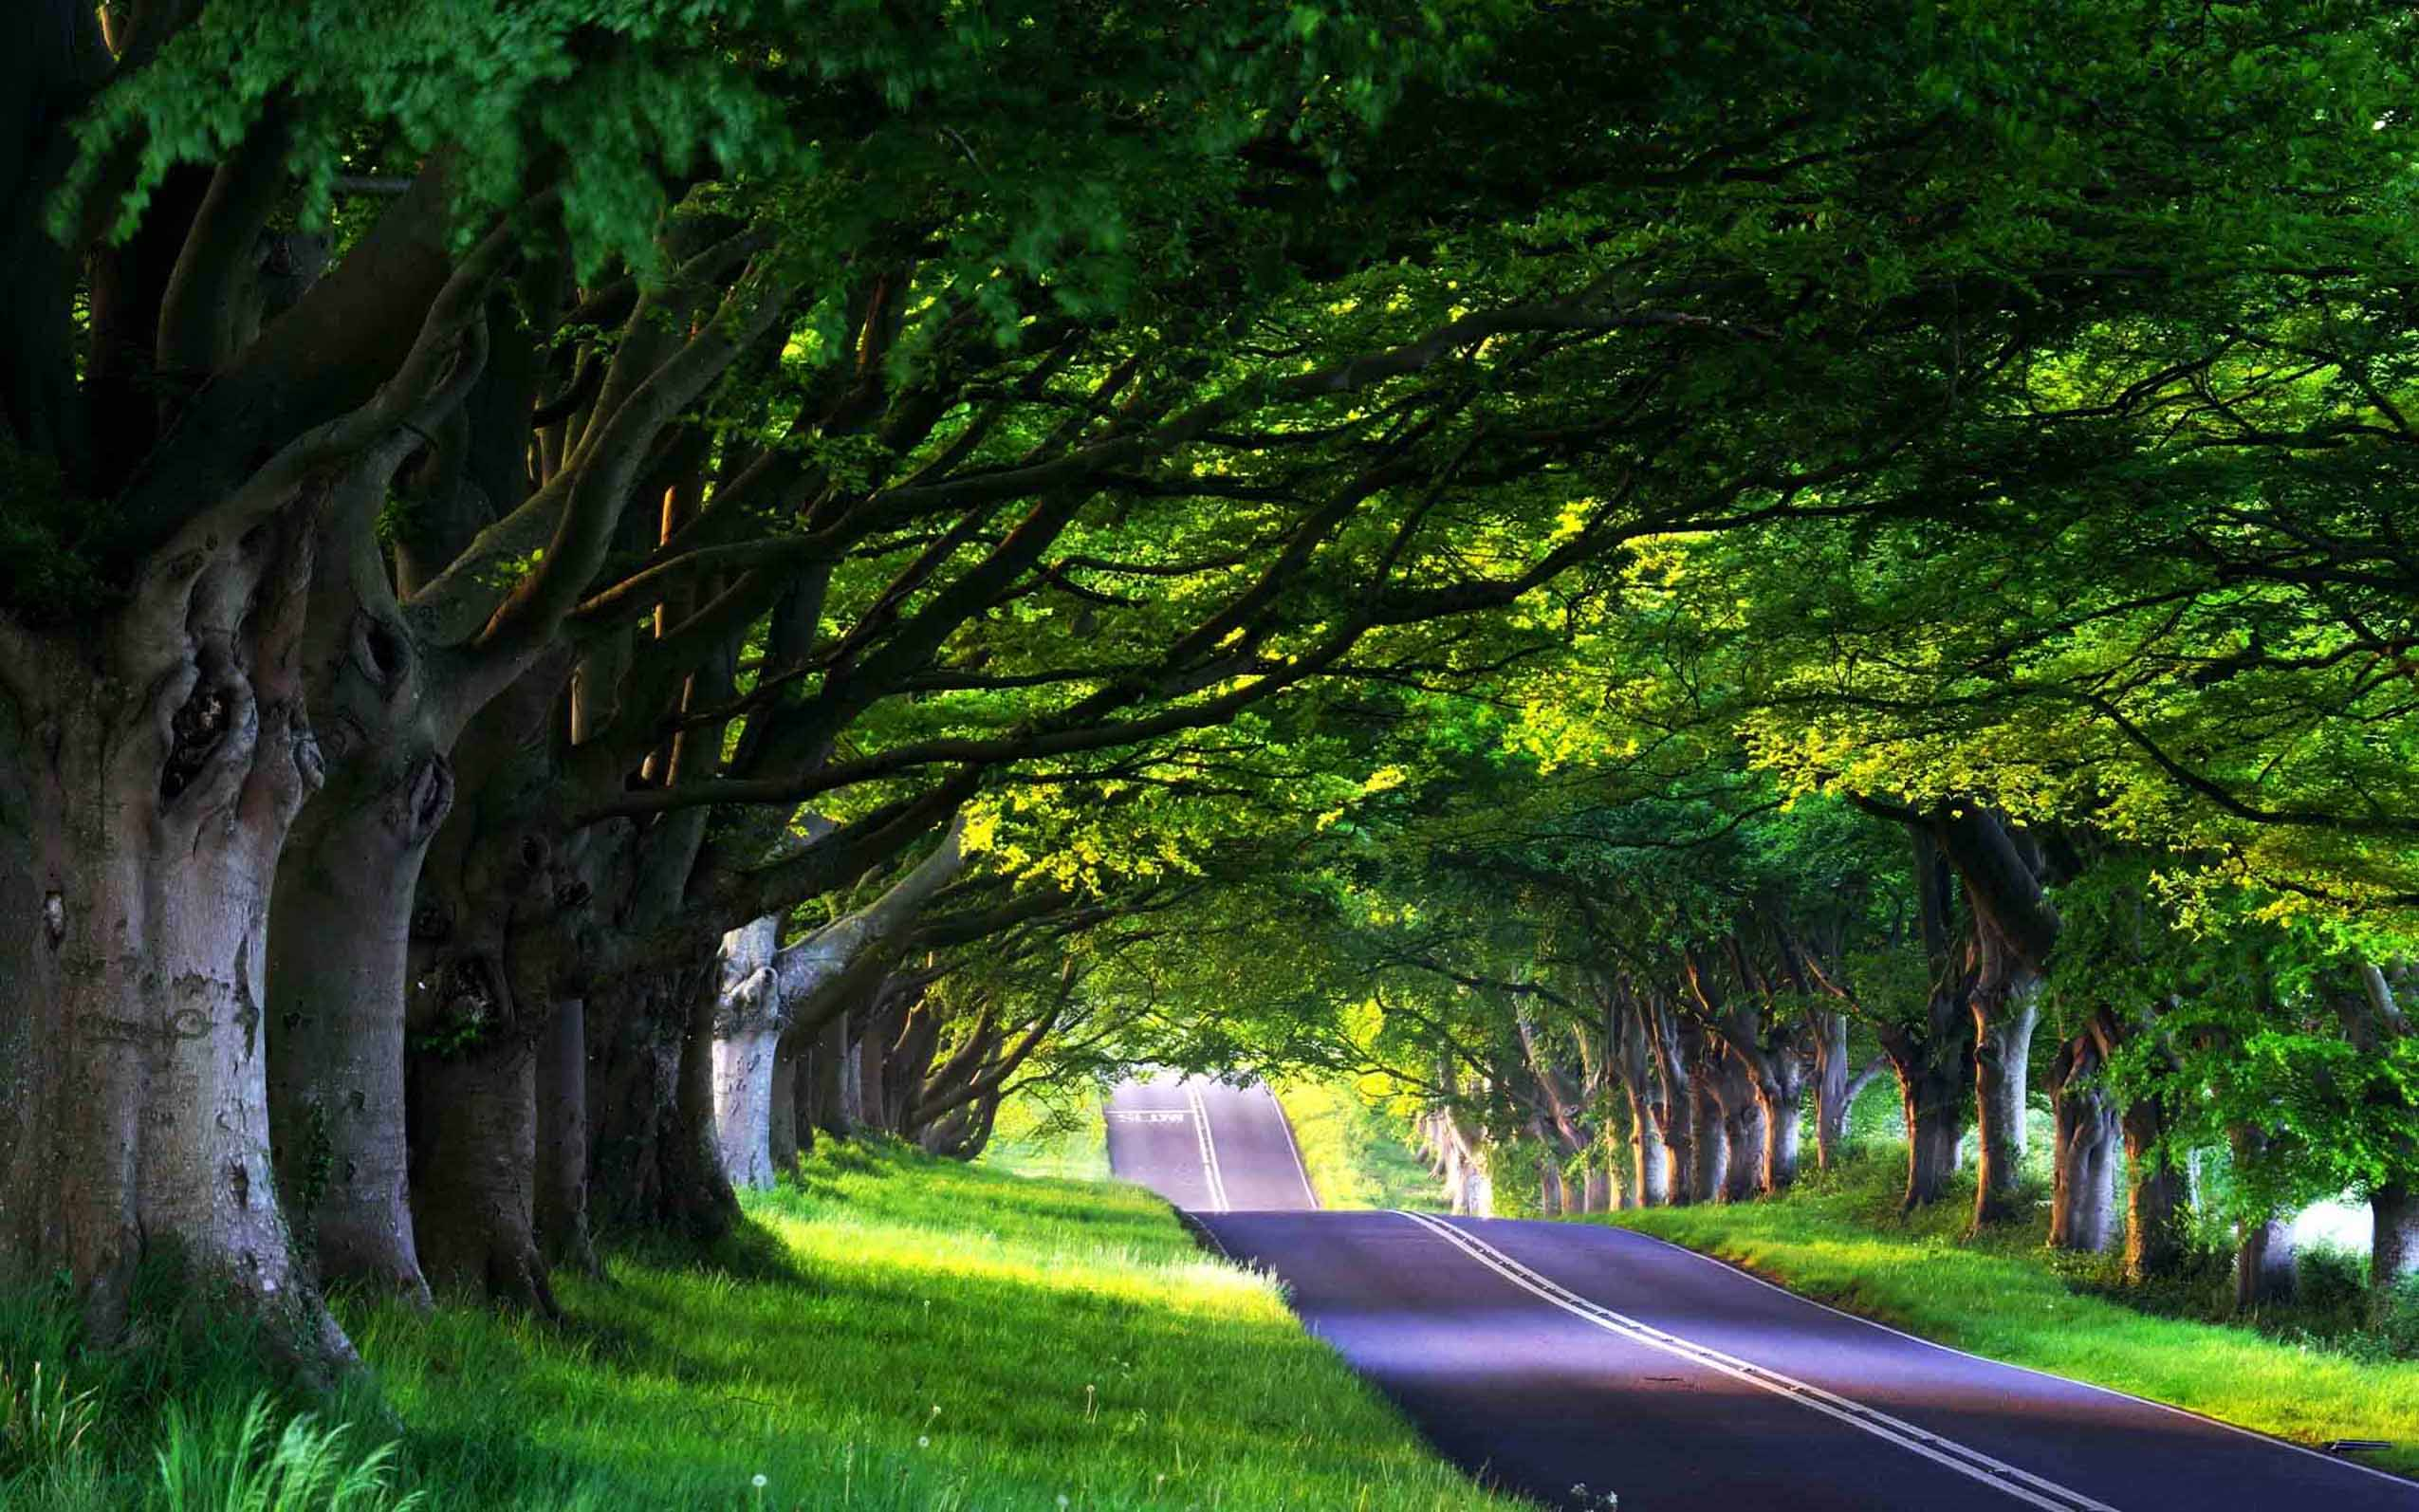 5291924-road-among-trees-wallpapers